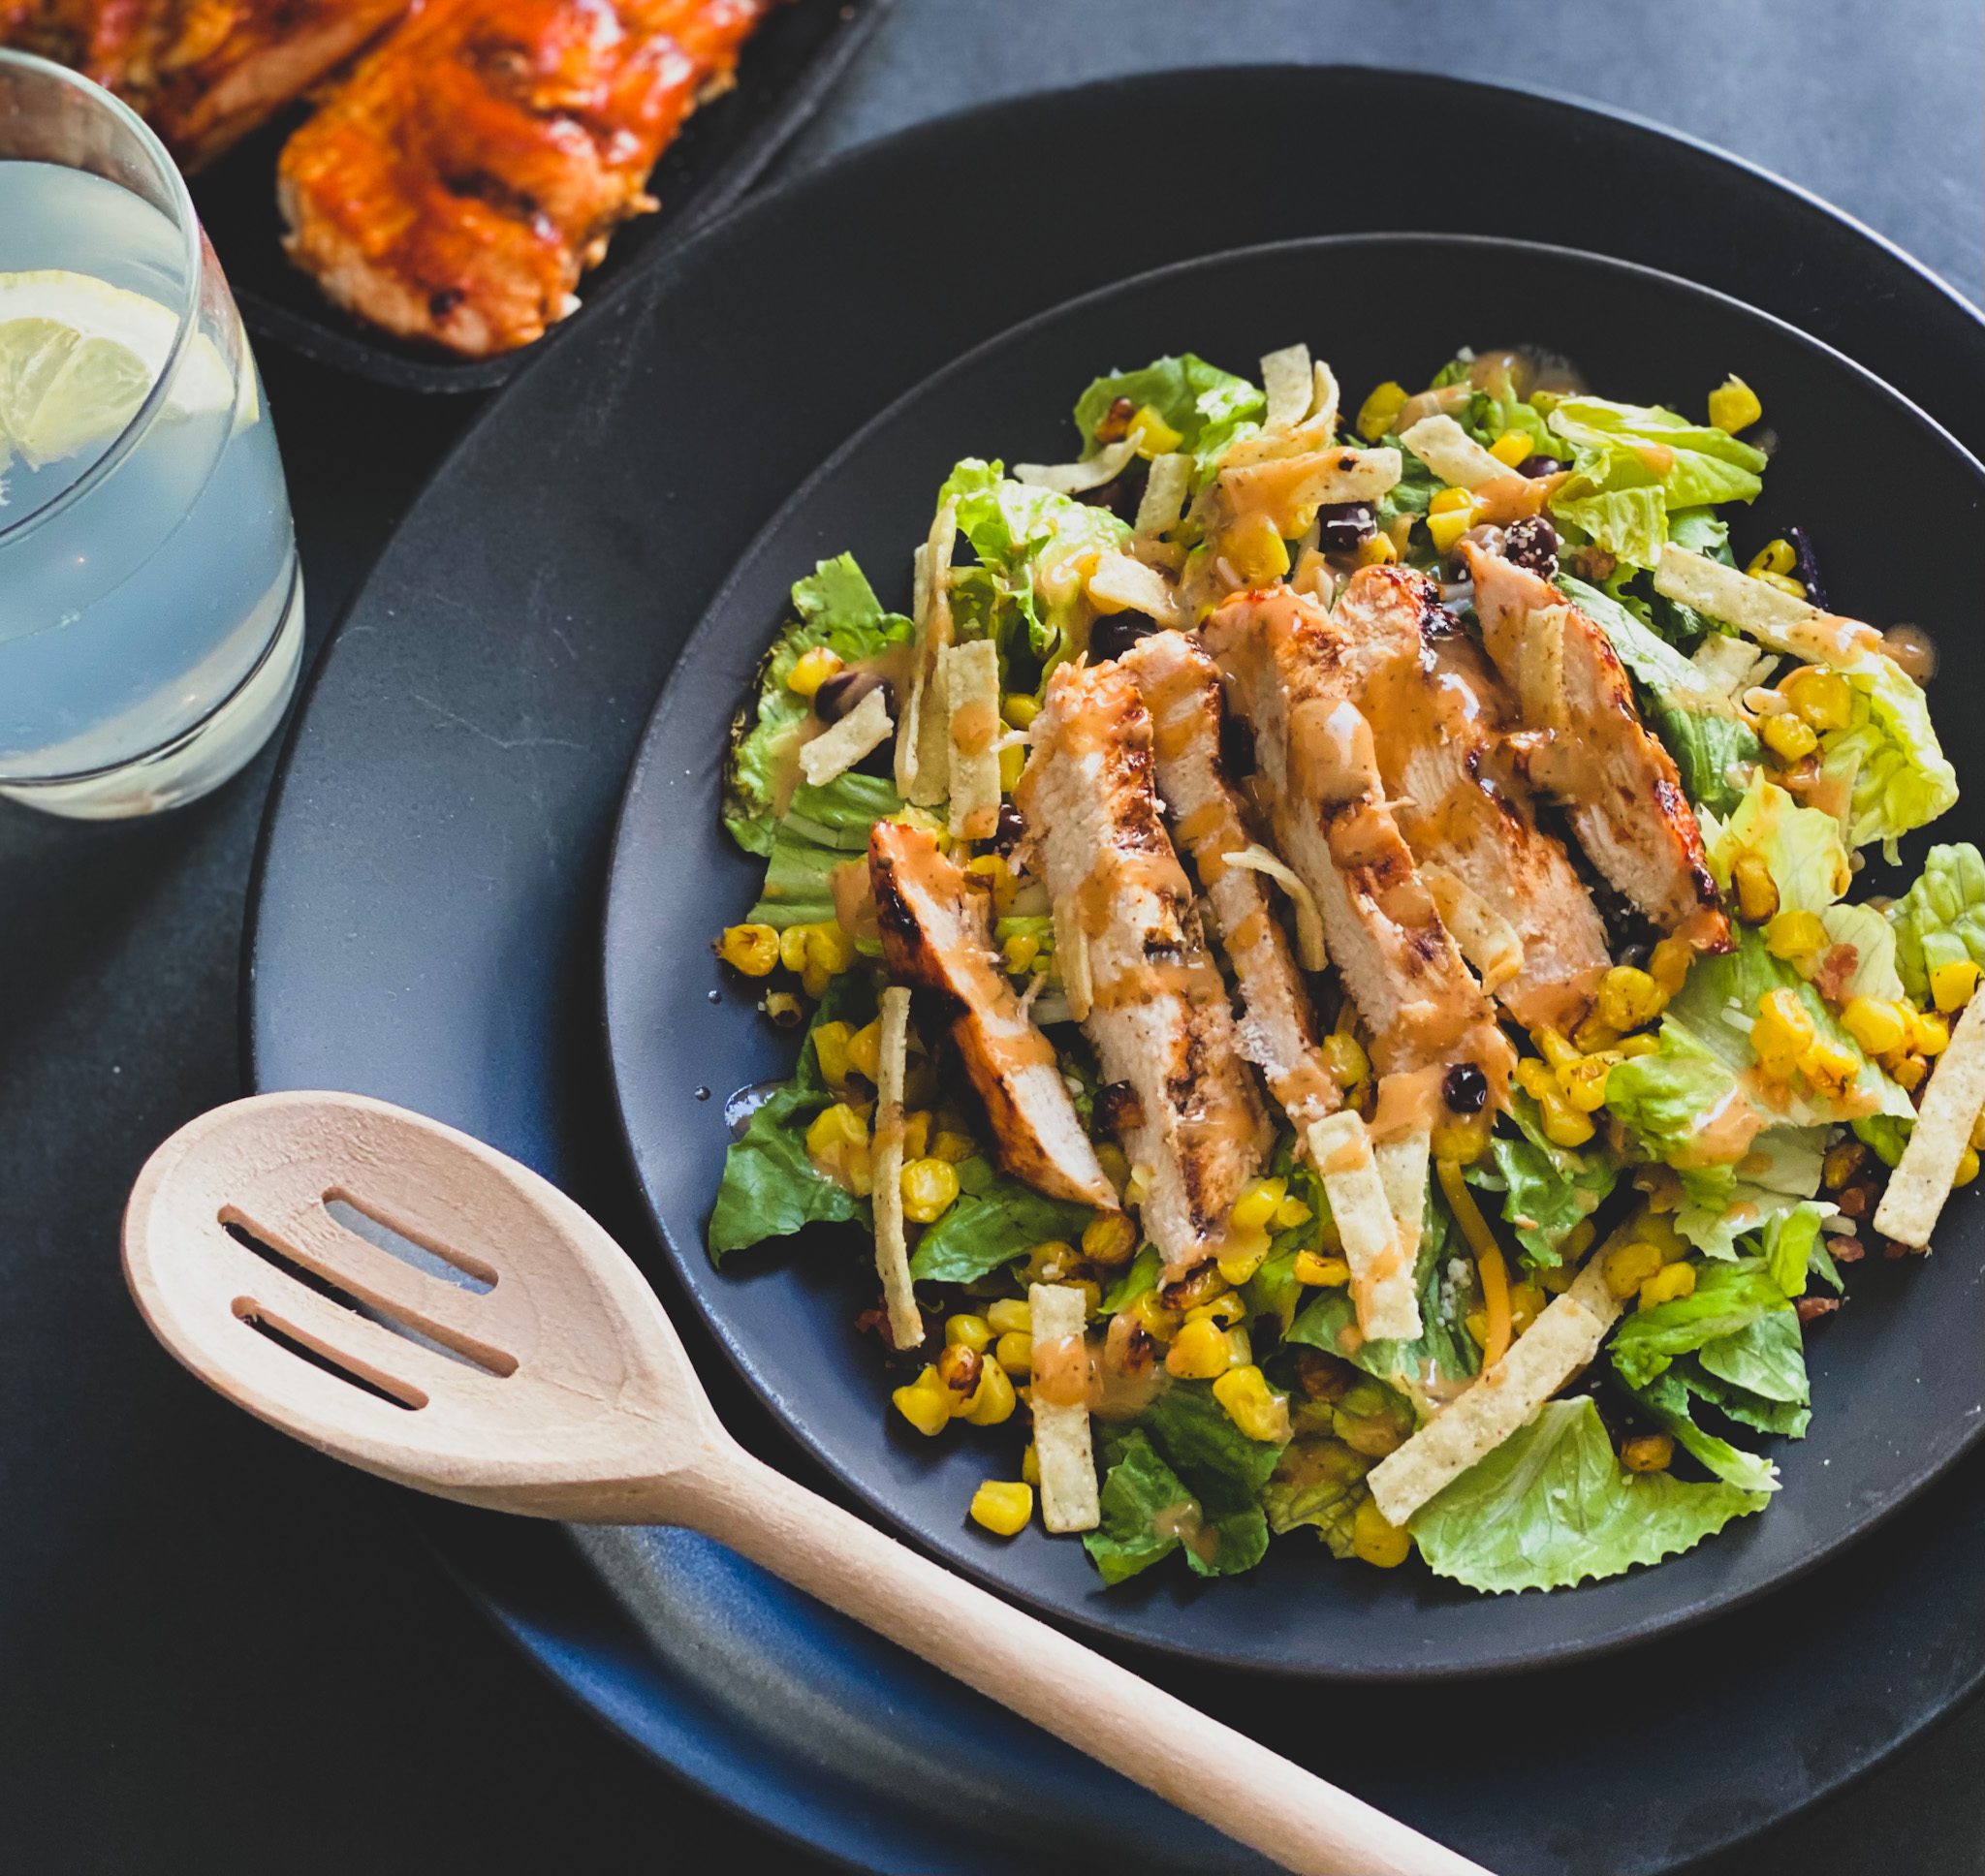 gluten free dairy free nut free soy free egg free barbeque bbq chicken salad